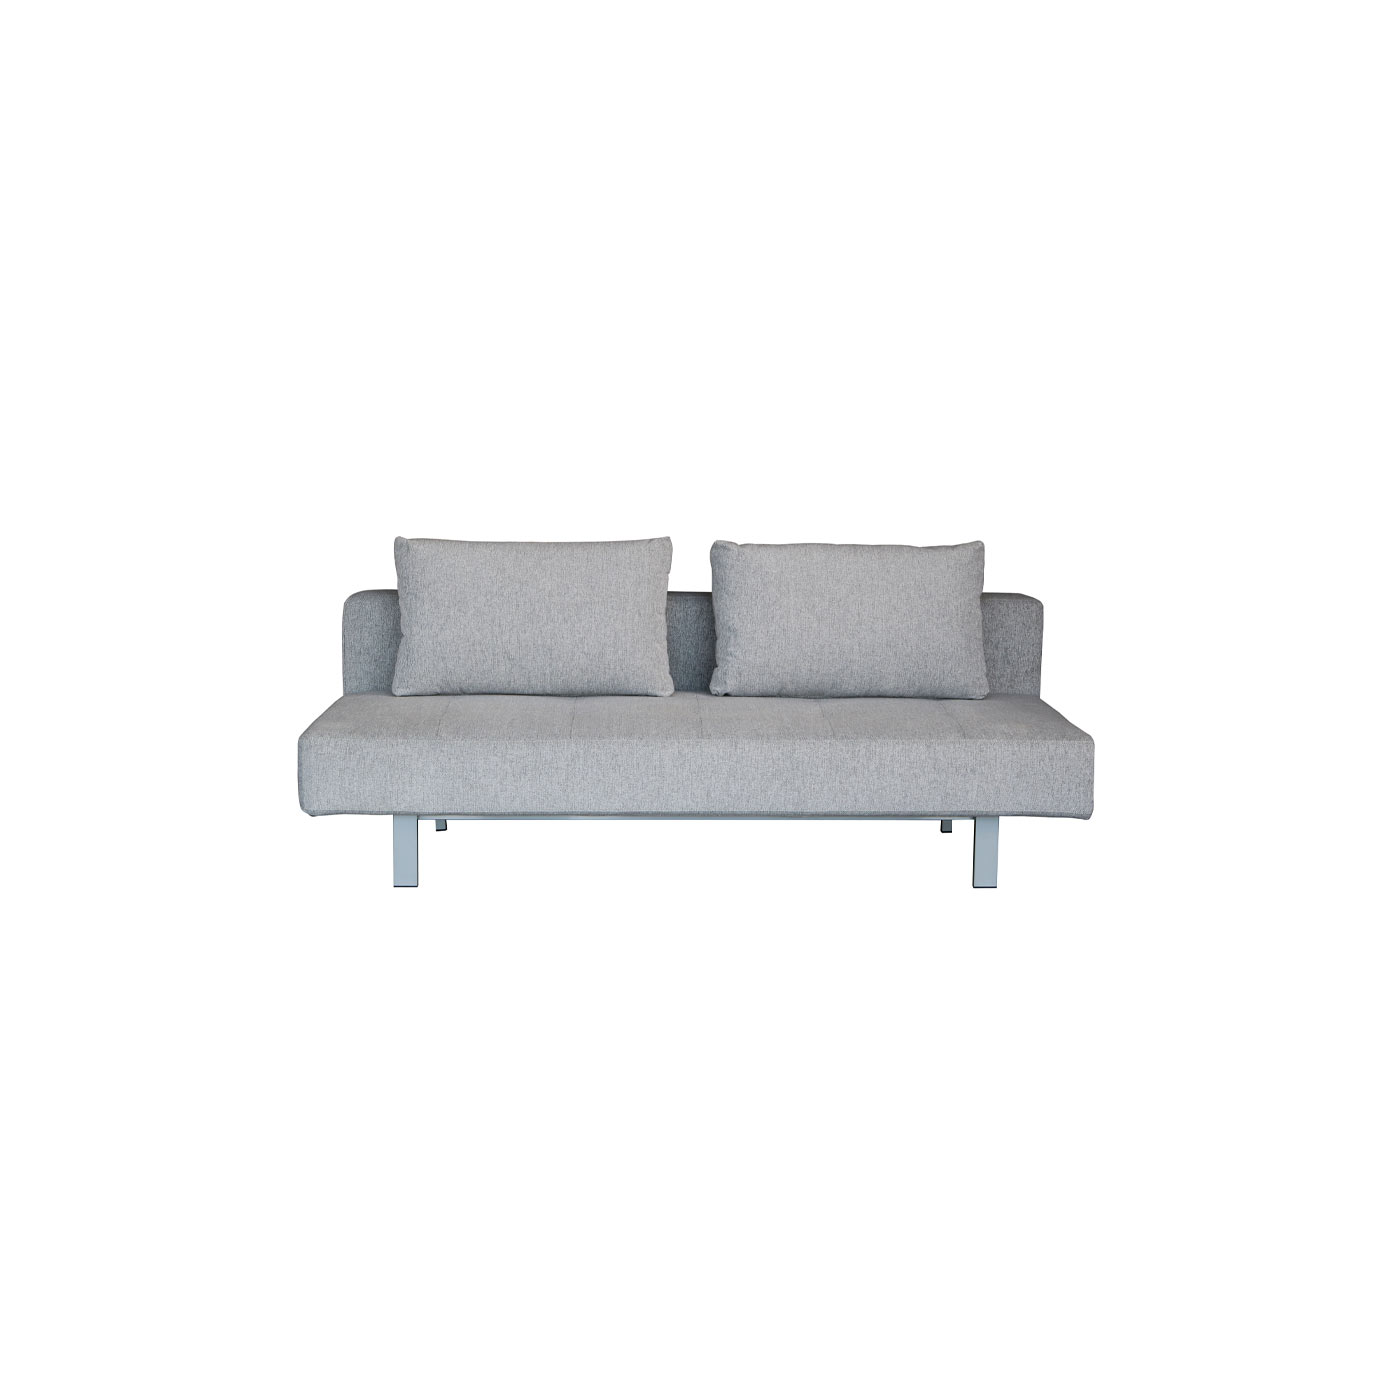 Hampstead_Sleeper_Sofa_In_Grey_Front_View_1